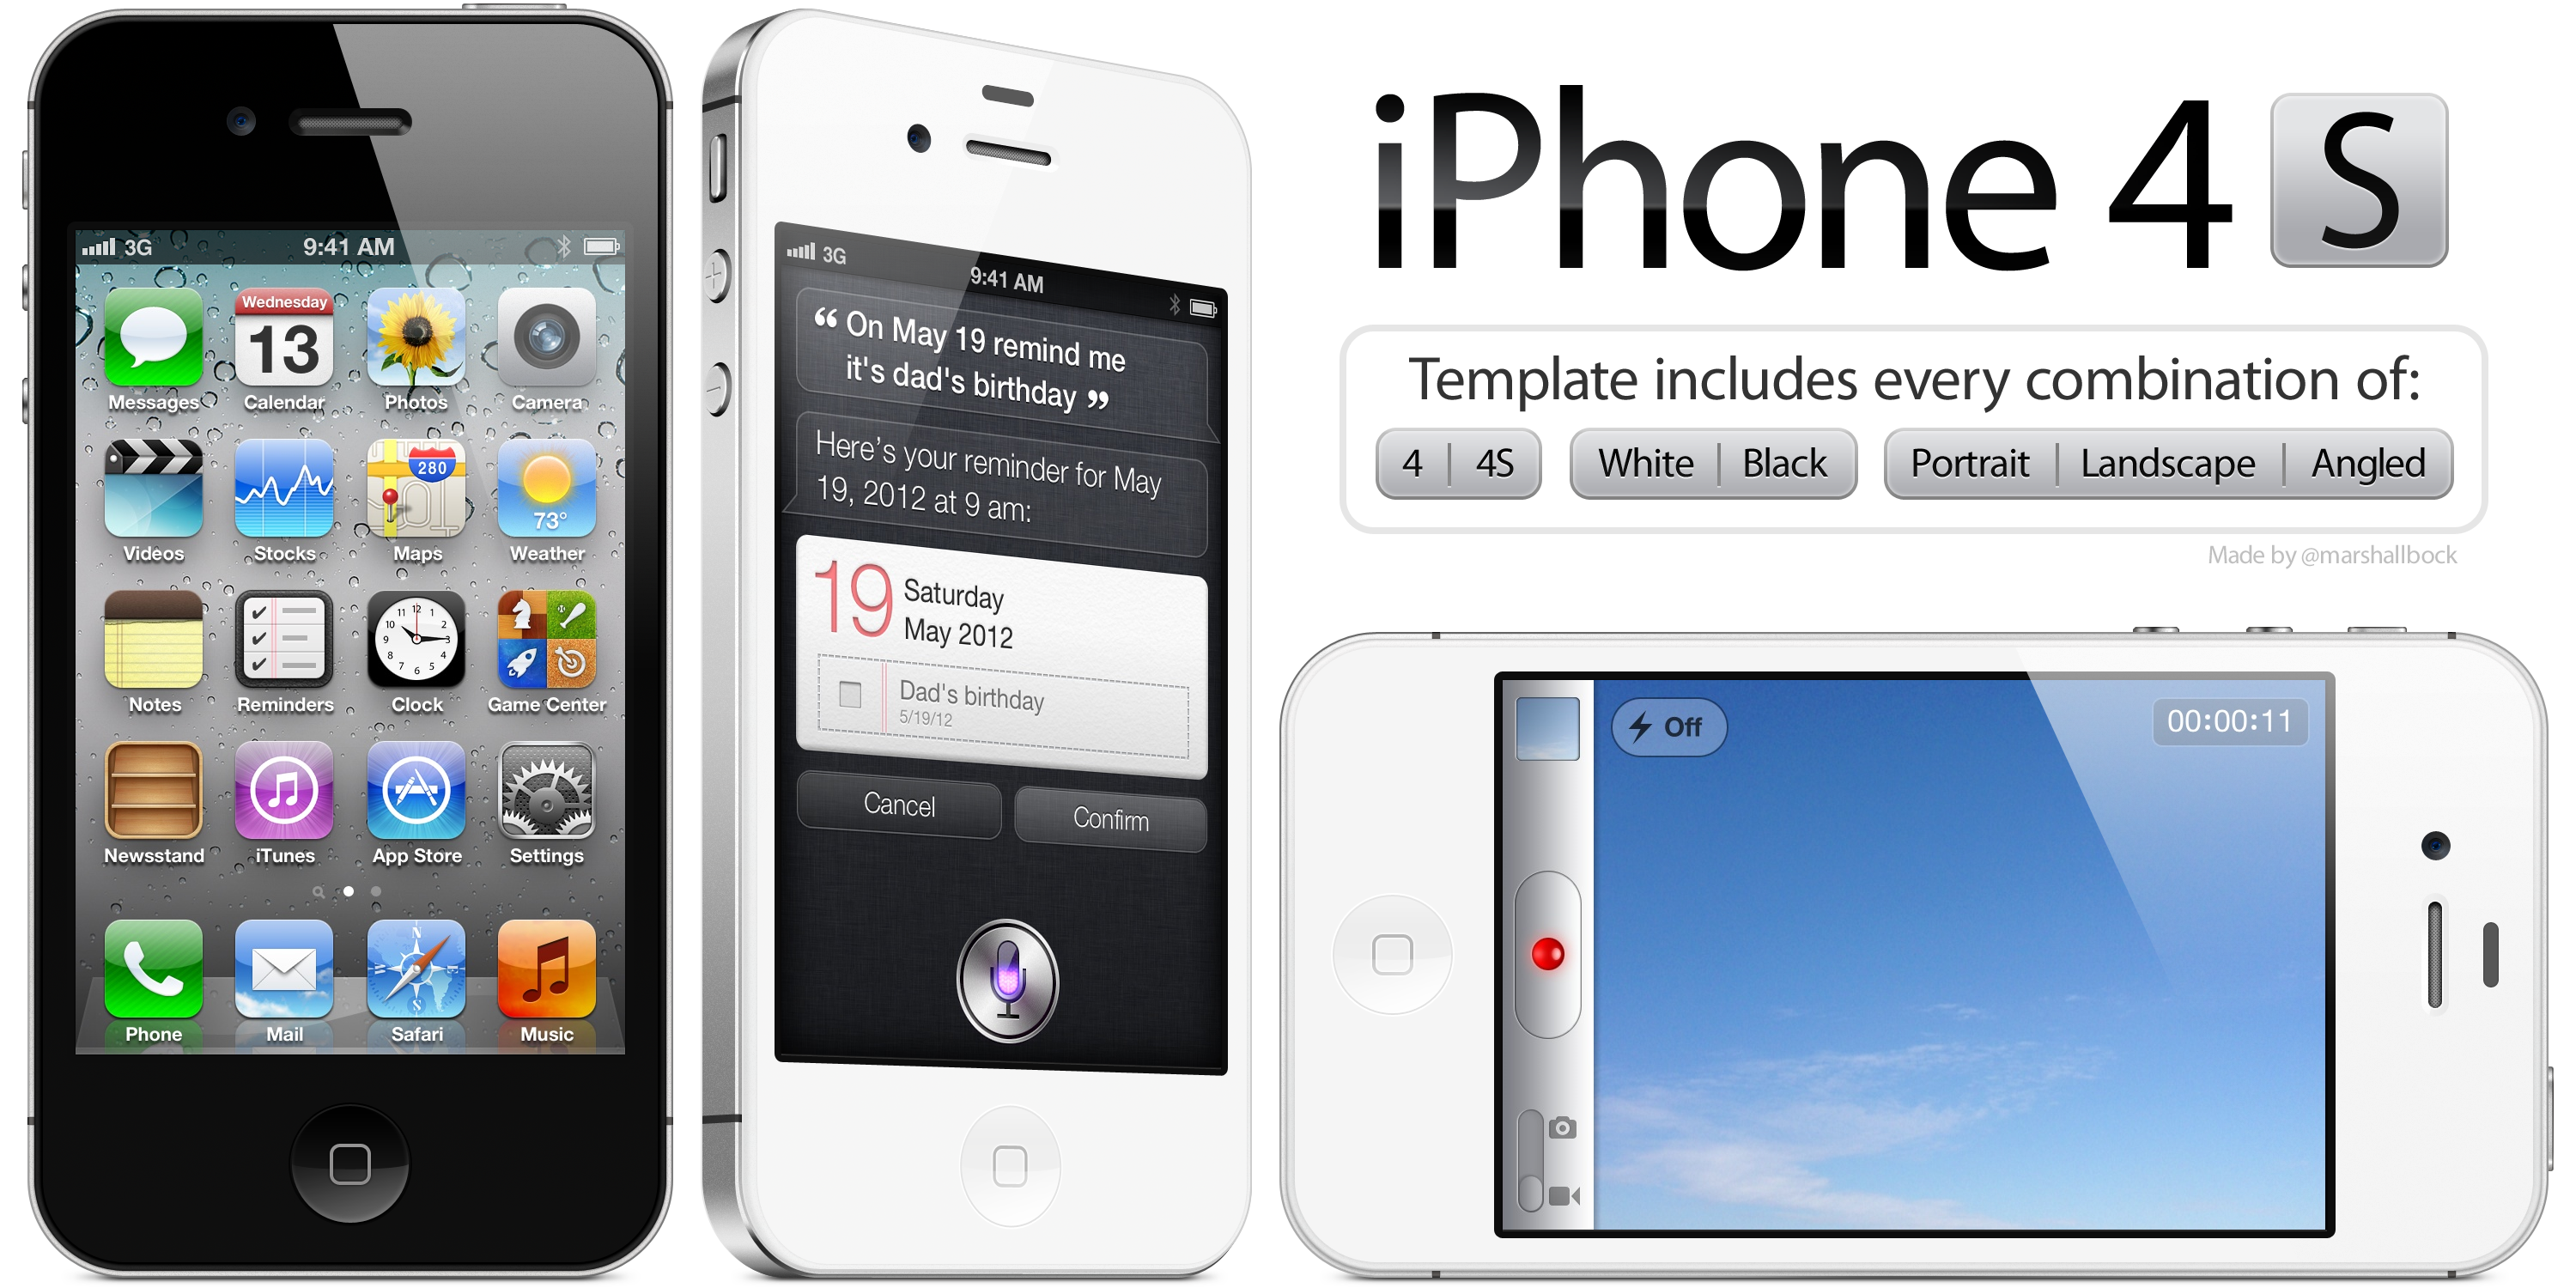 Iphone4s template